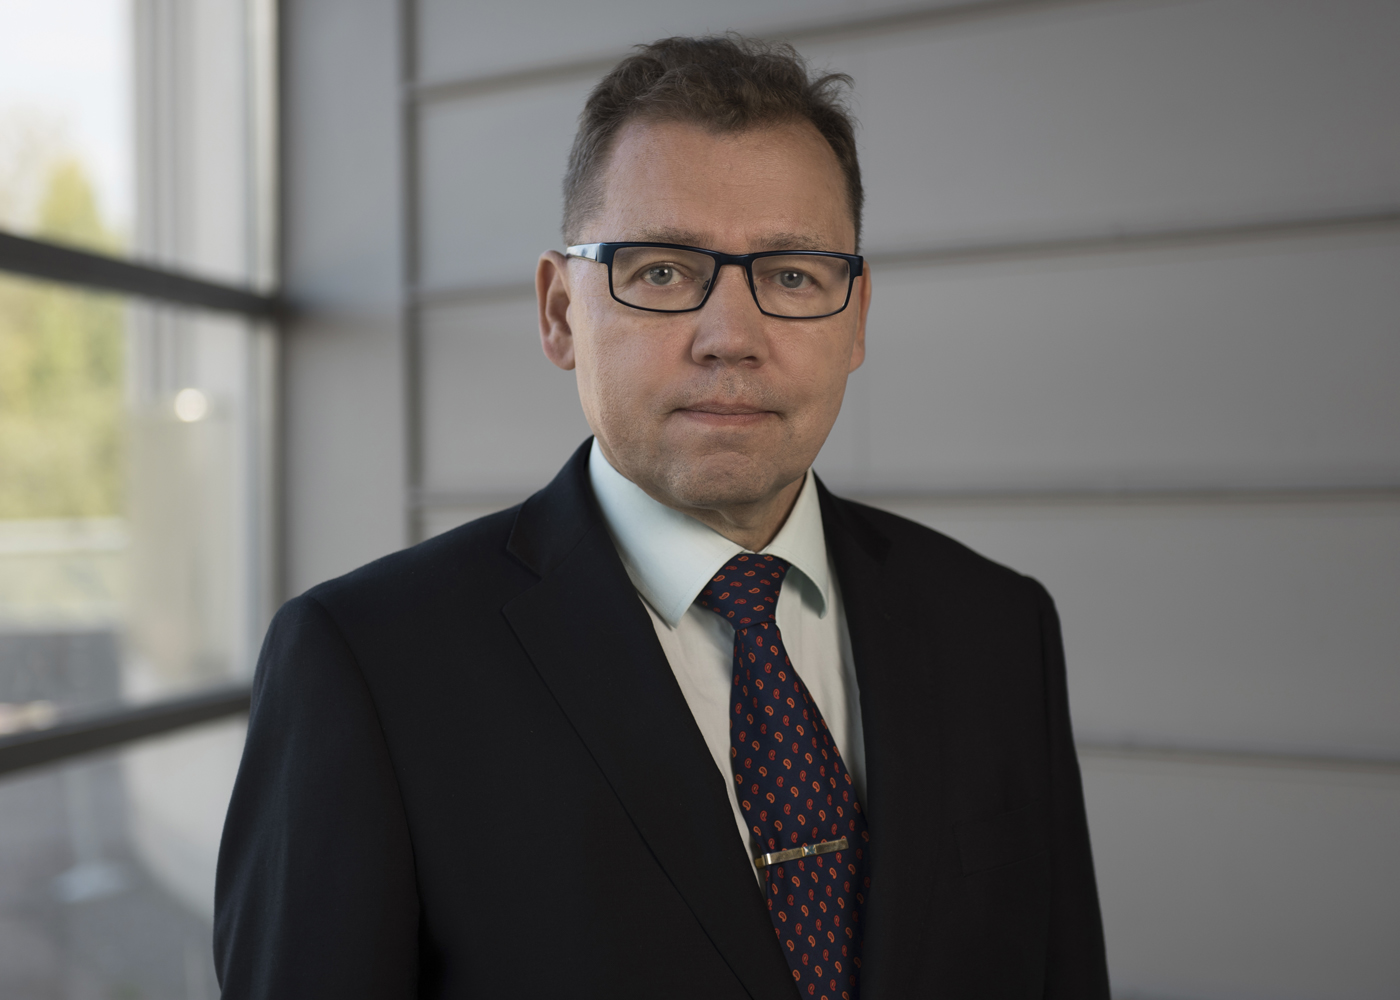 Ismo Kuutti, Director, Financial Advisory Services